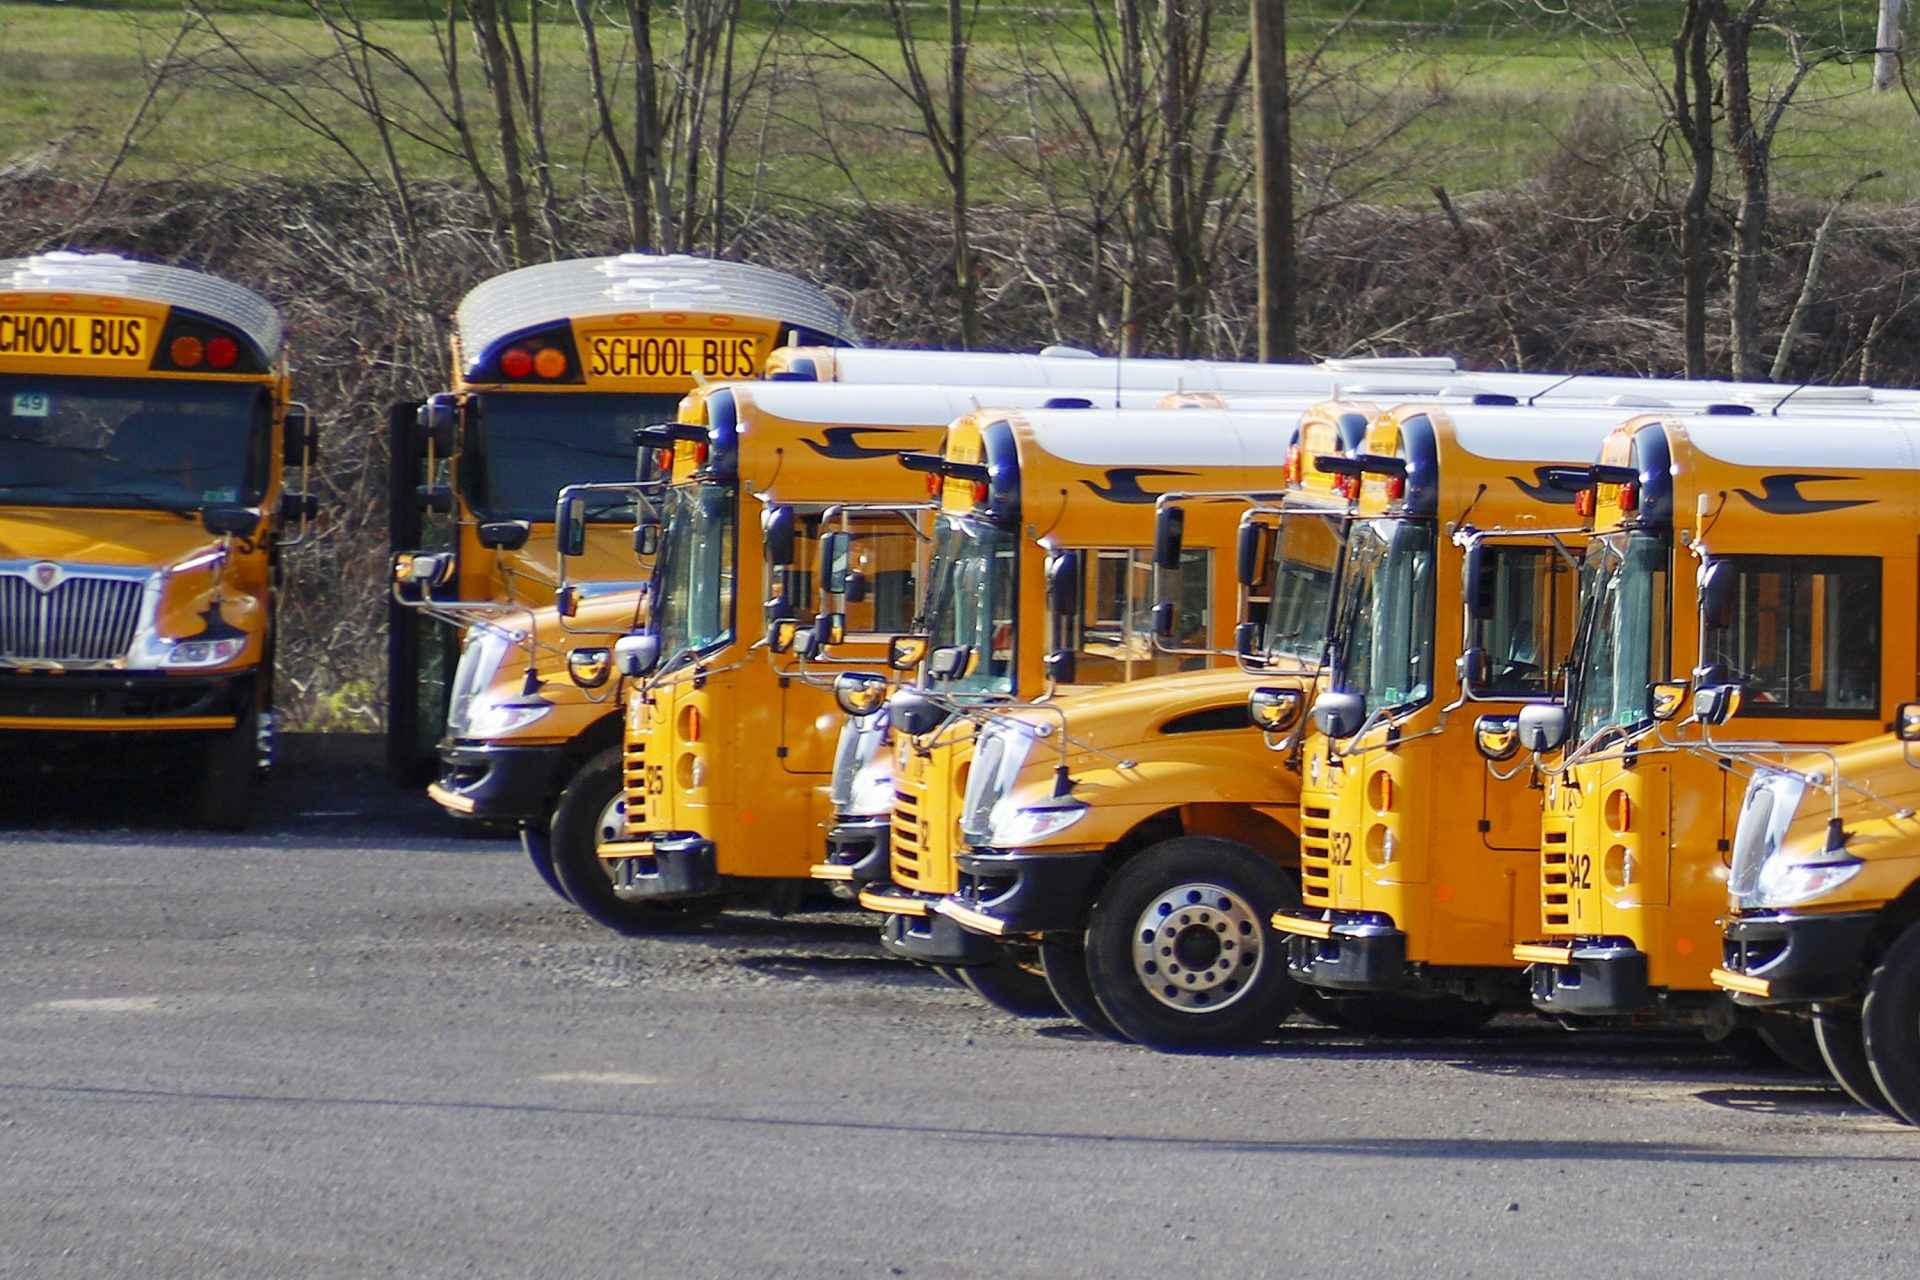 School buses are parked at a depot Thursday, April 9, 2020, in Zelienople, Pa. Pennsylvania Gov. Tom Wolf said Thursday that schools will remain shuttered for the rest of the academic year because of the coronavirus pandemic.